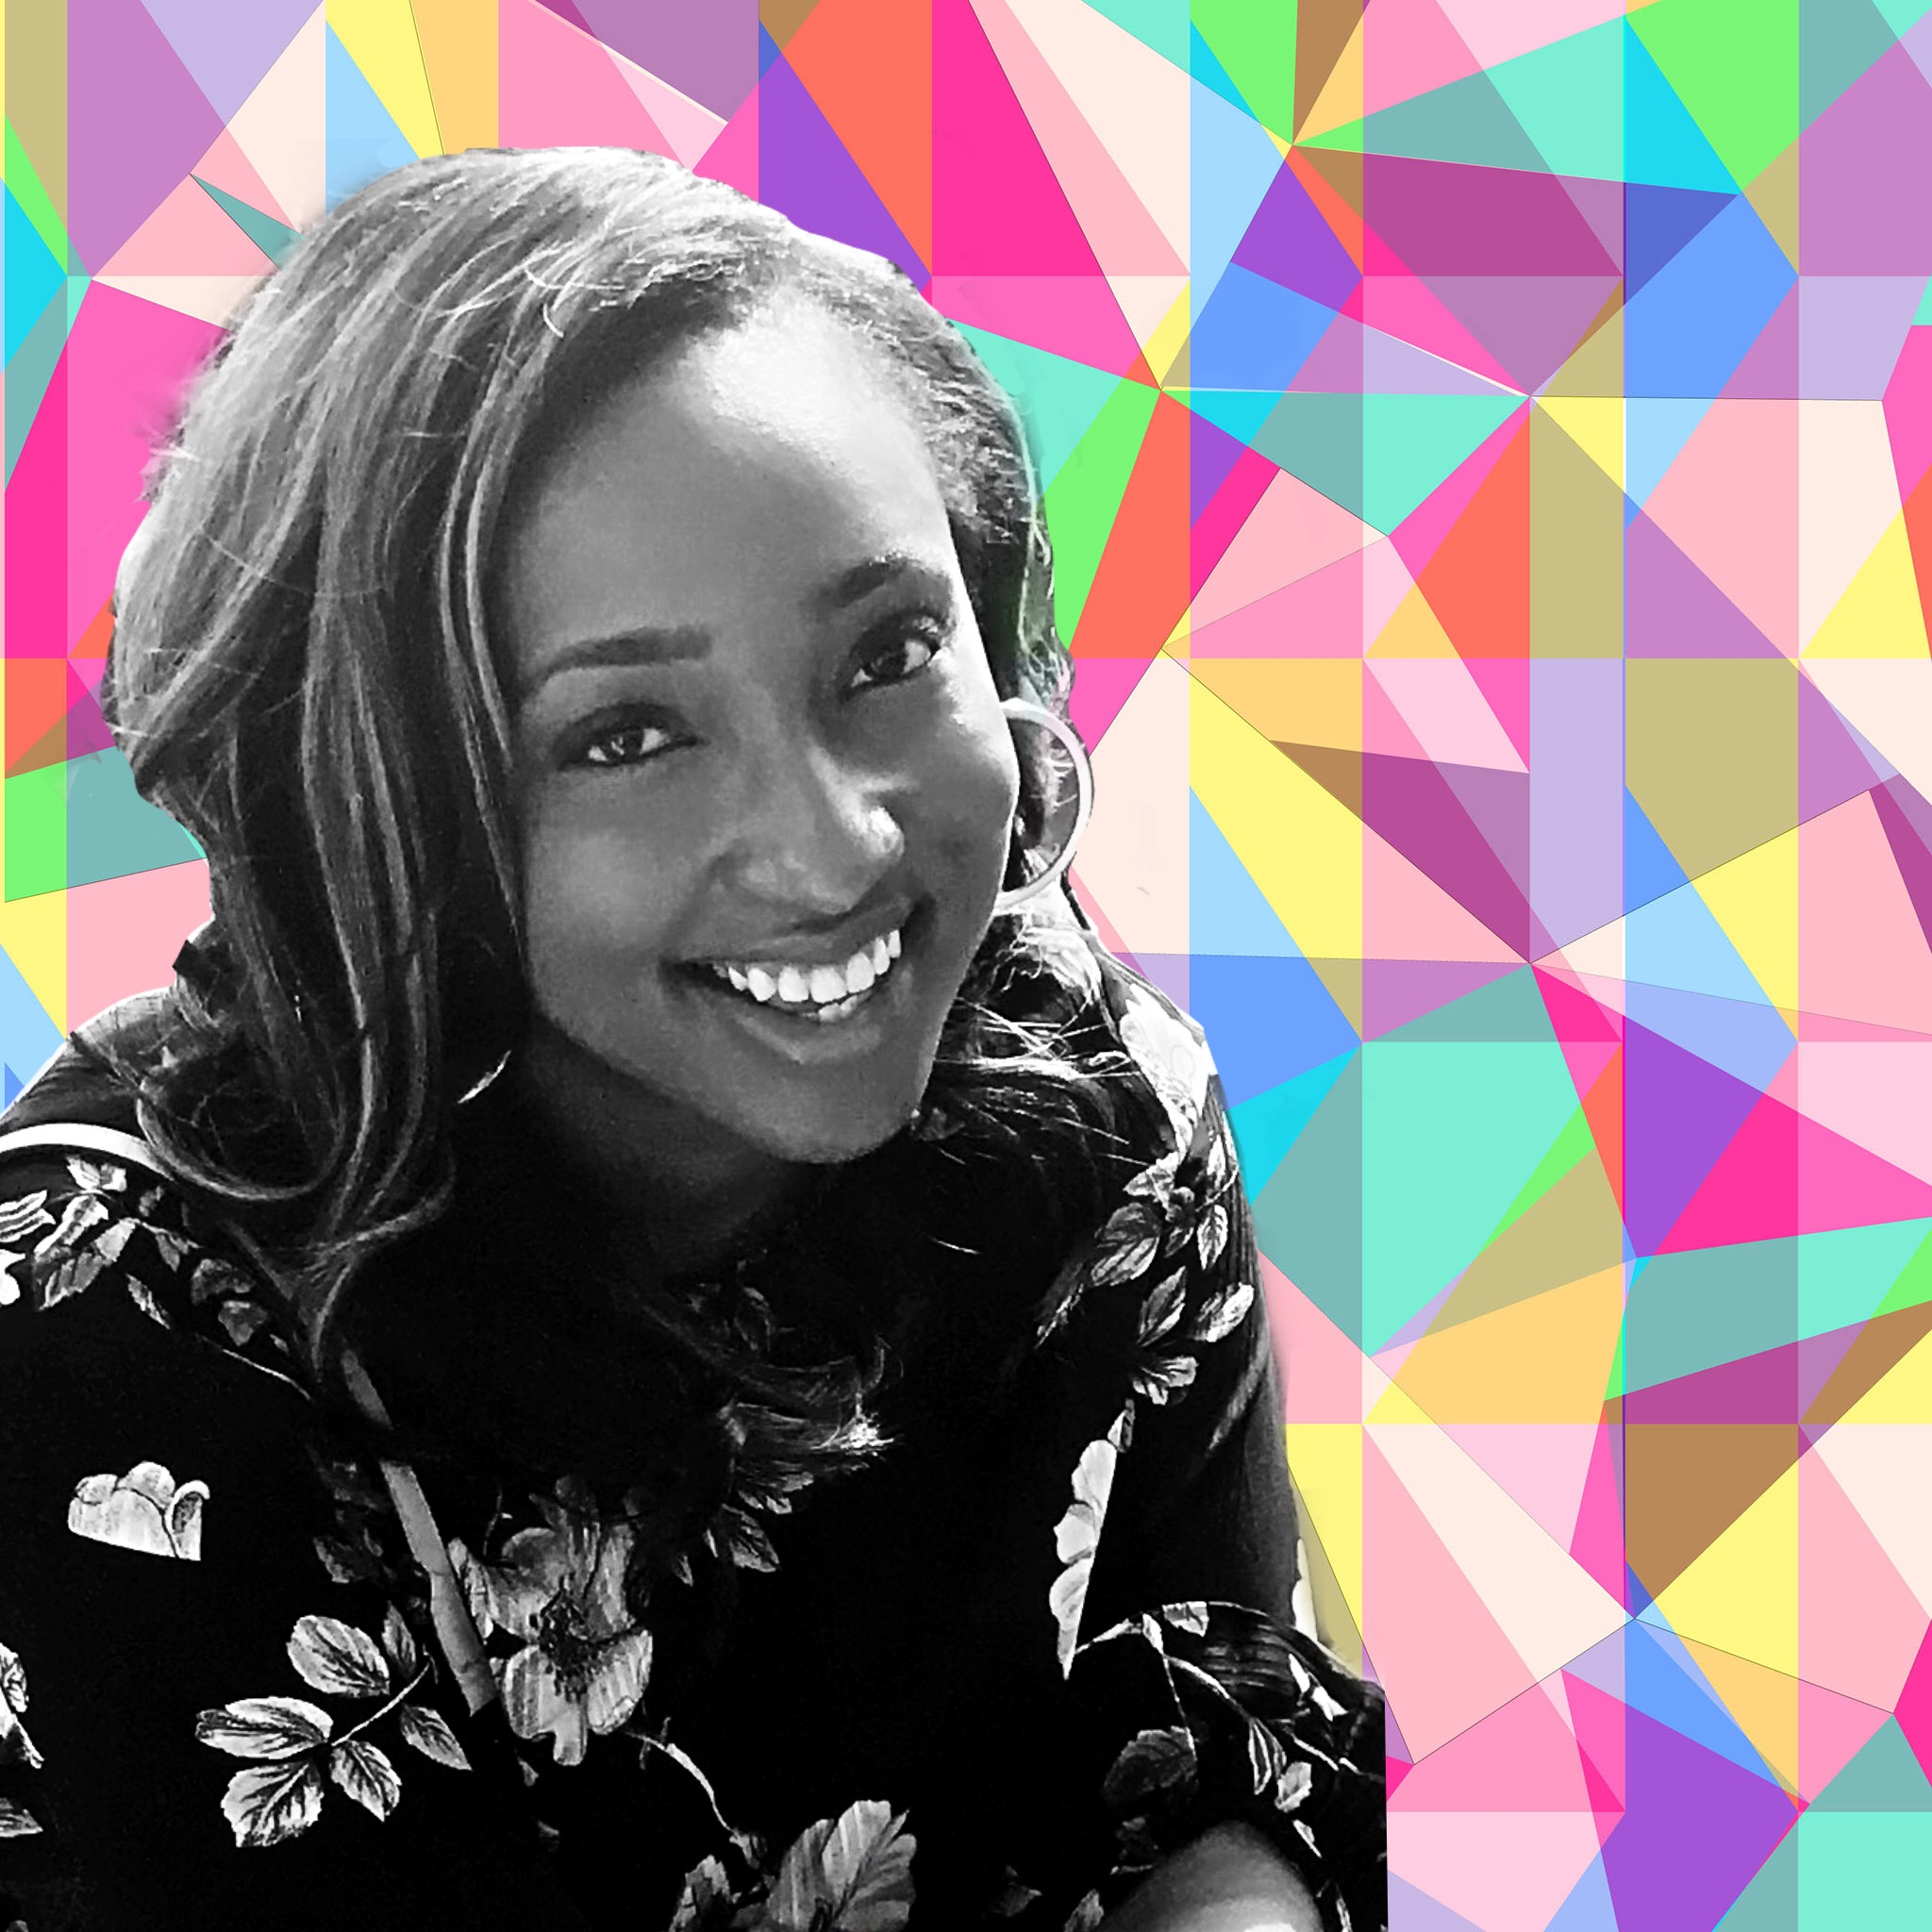 @Krystal_Klarity  - OpinionHey YBN Readers! Let's welcome Krystal of Krystal Klarity! She is an Entertainment Attorney and Brand Strategist, with a passion for influencer marketing. Her work includes campaigns with Dove, SheaMoisture, Disney Studios, and many more. In this article, she'll discuss the most common misconceptions among influencers regarding the FTC disclosure requirements for sponsored post.